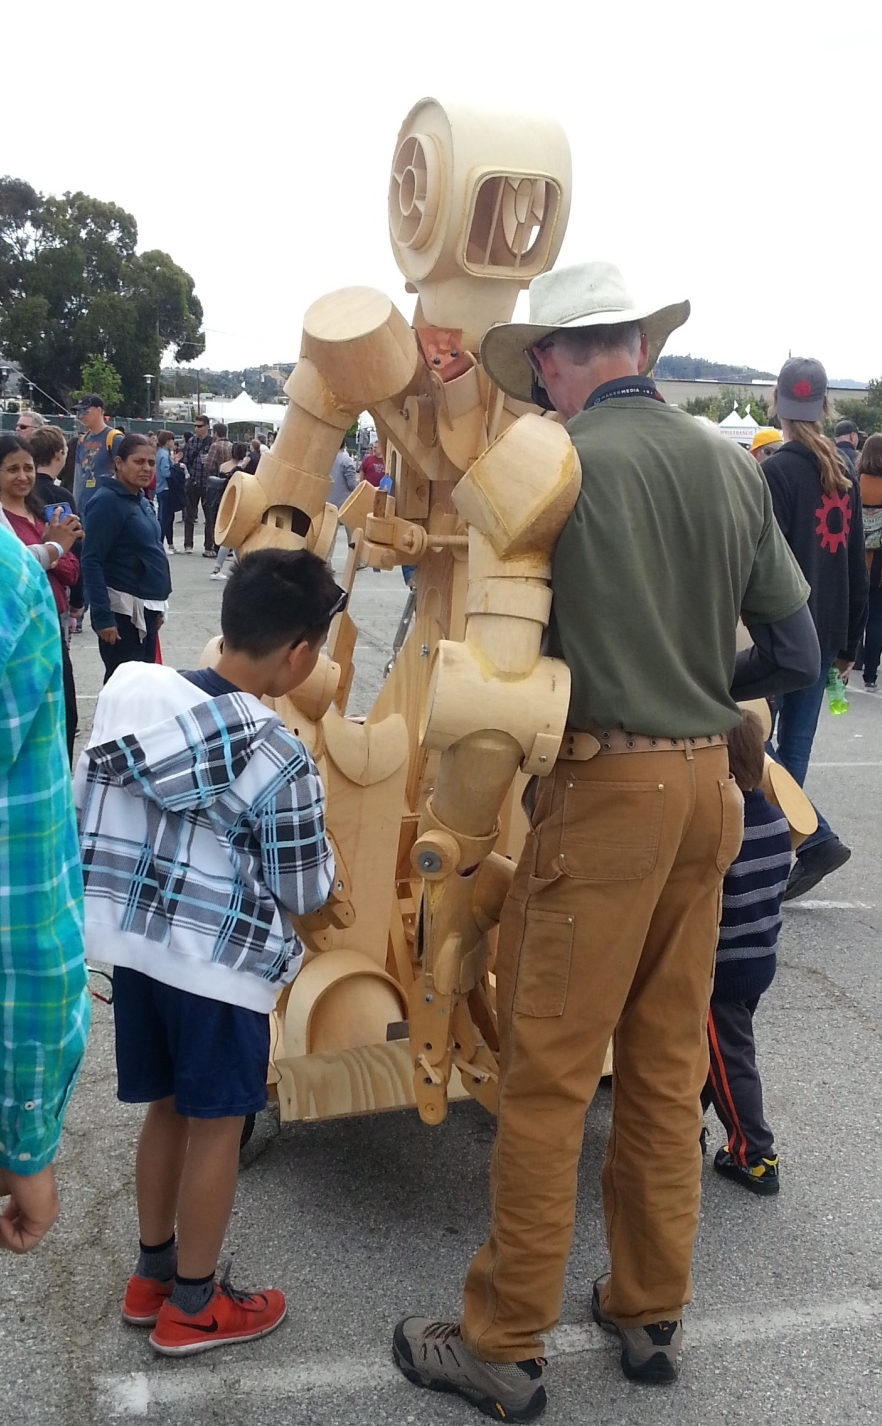 This guy is showing some kids the finer points of his fully articulated wooden robot suit.